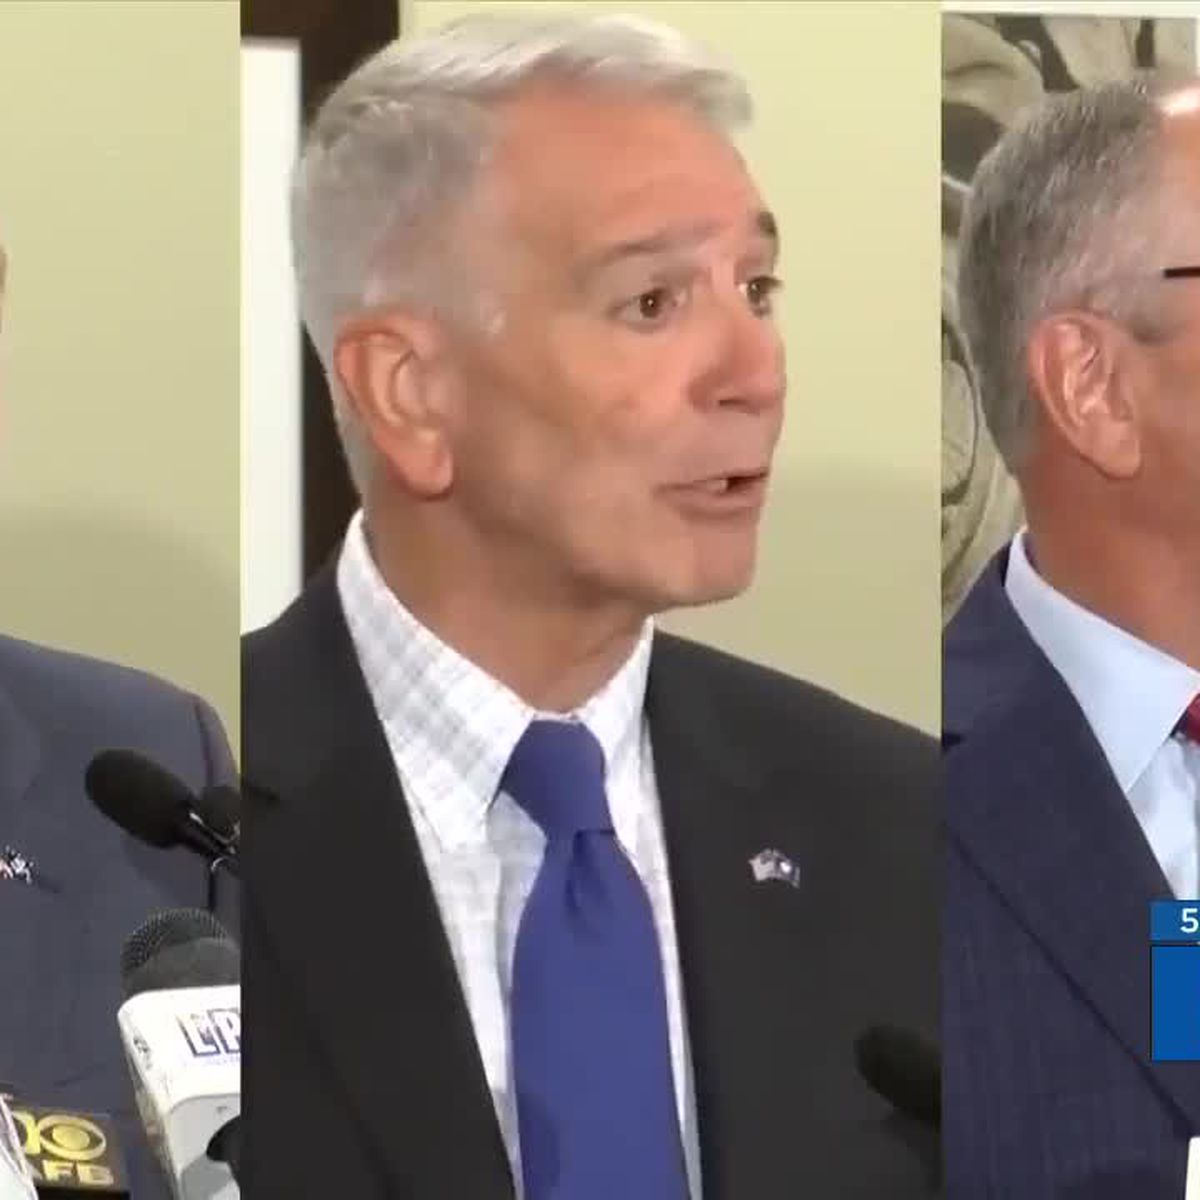 New FOX 8 poll shows how Edwards & Rispone stack up with different groups of voters and statewide